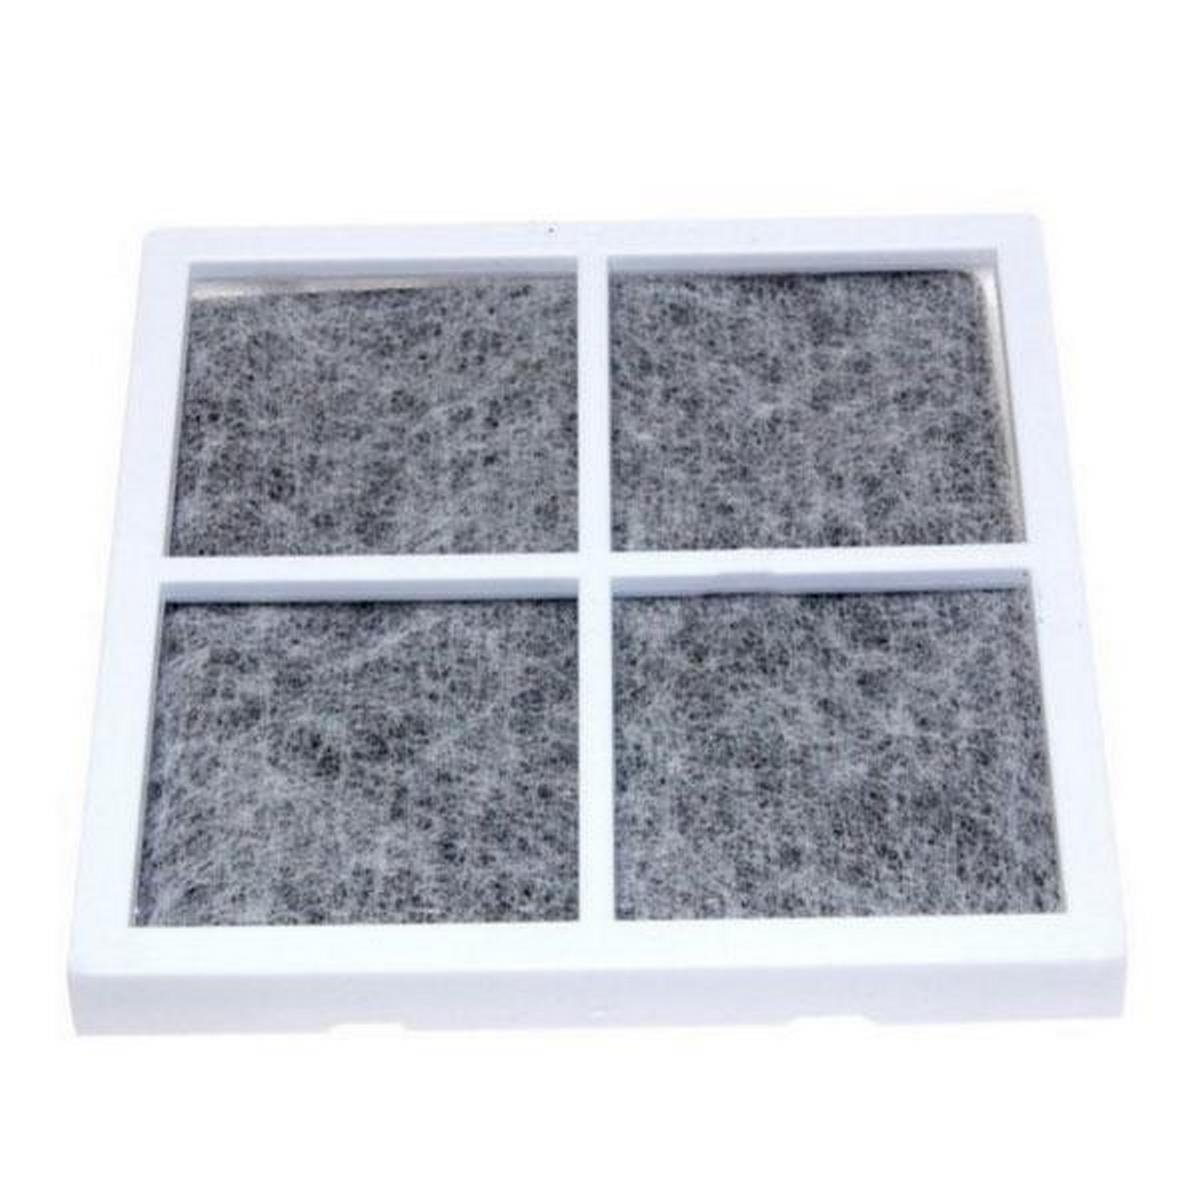 LG ADQ73214404 Air Filter Assembly